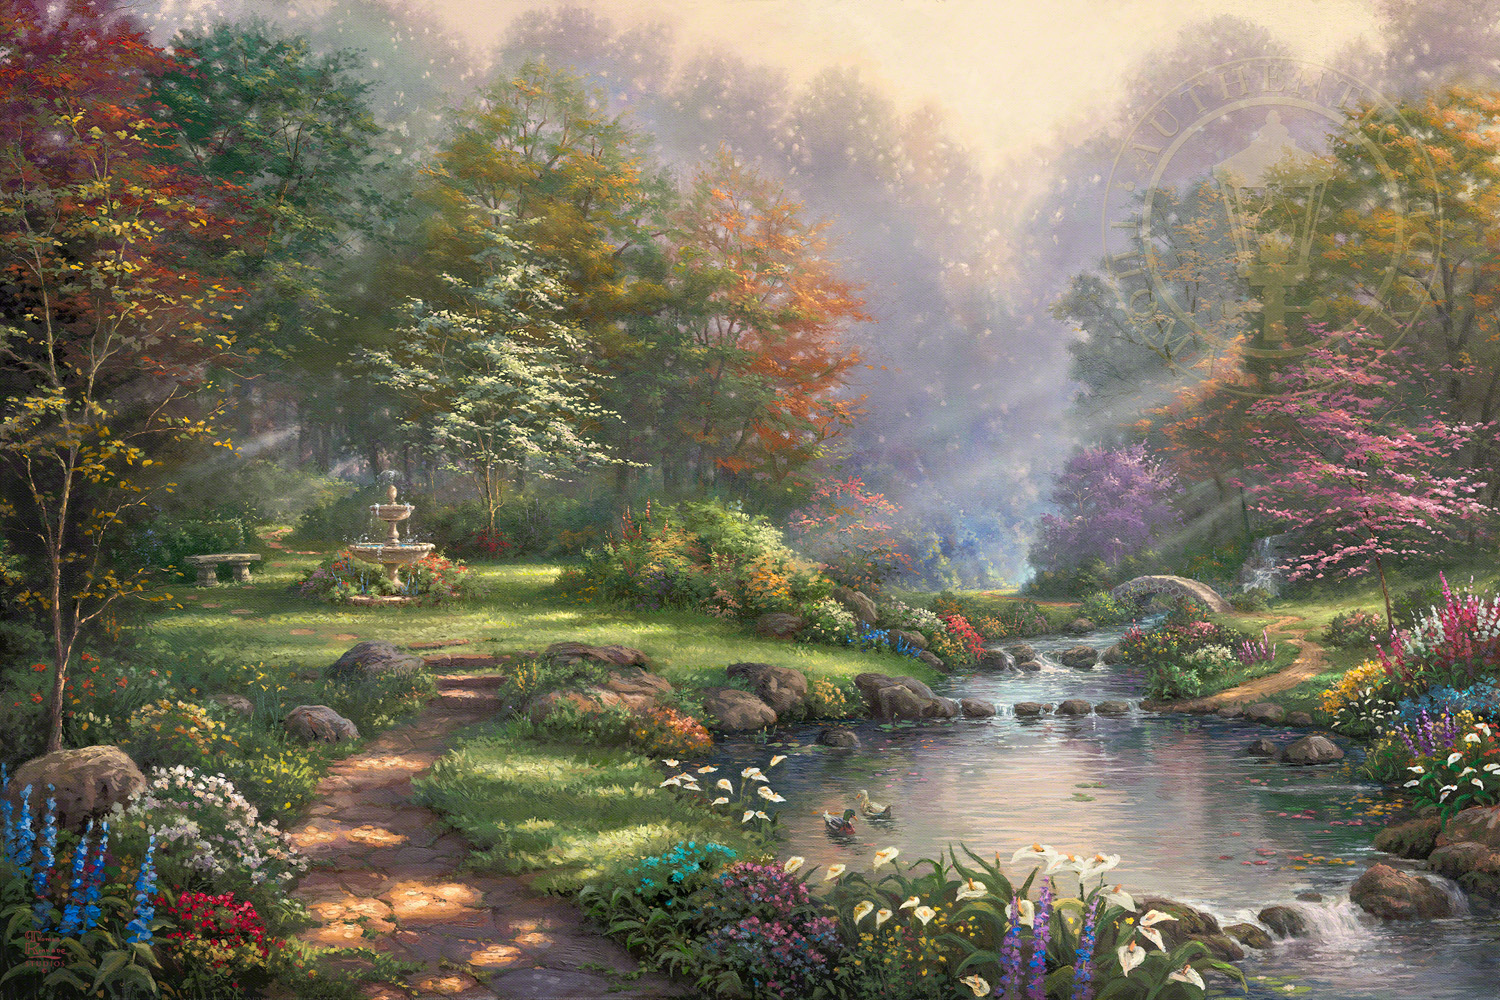 Thomas Kinkade Paintings For Sale